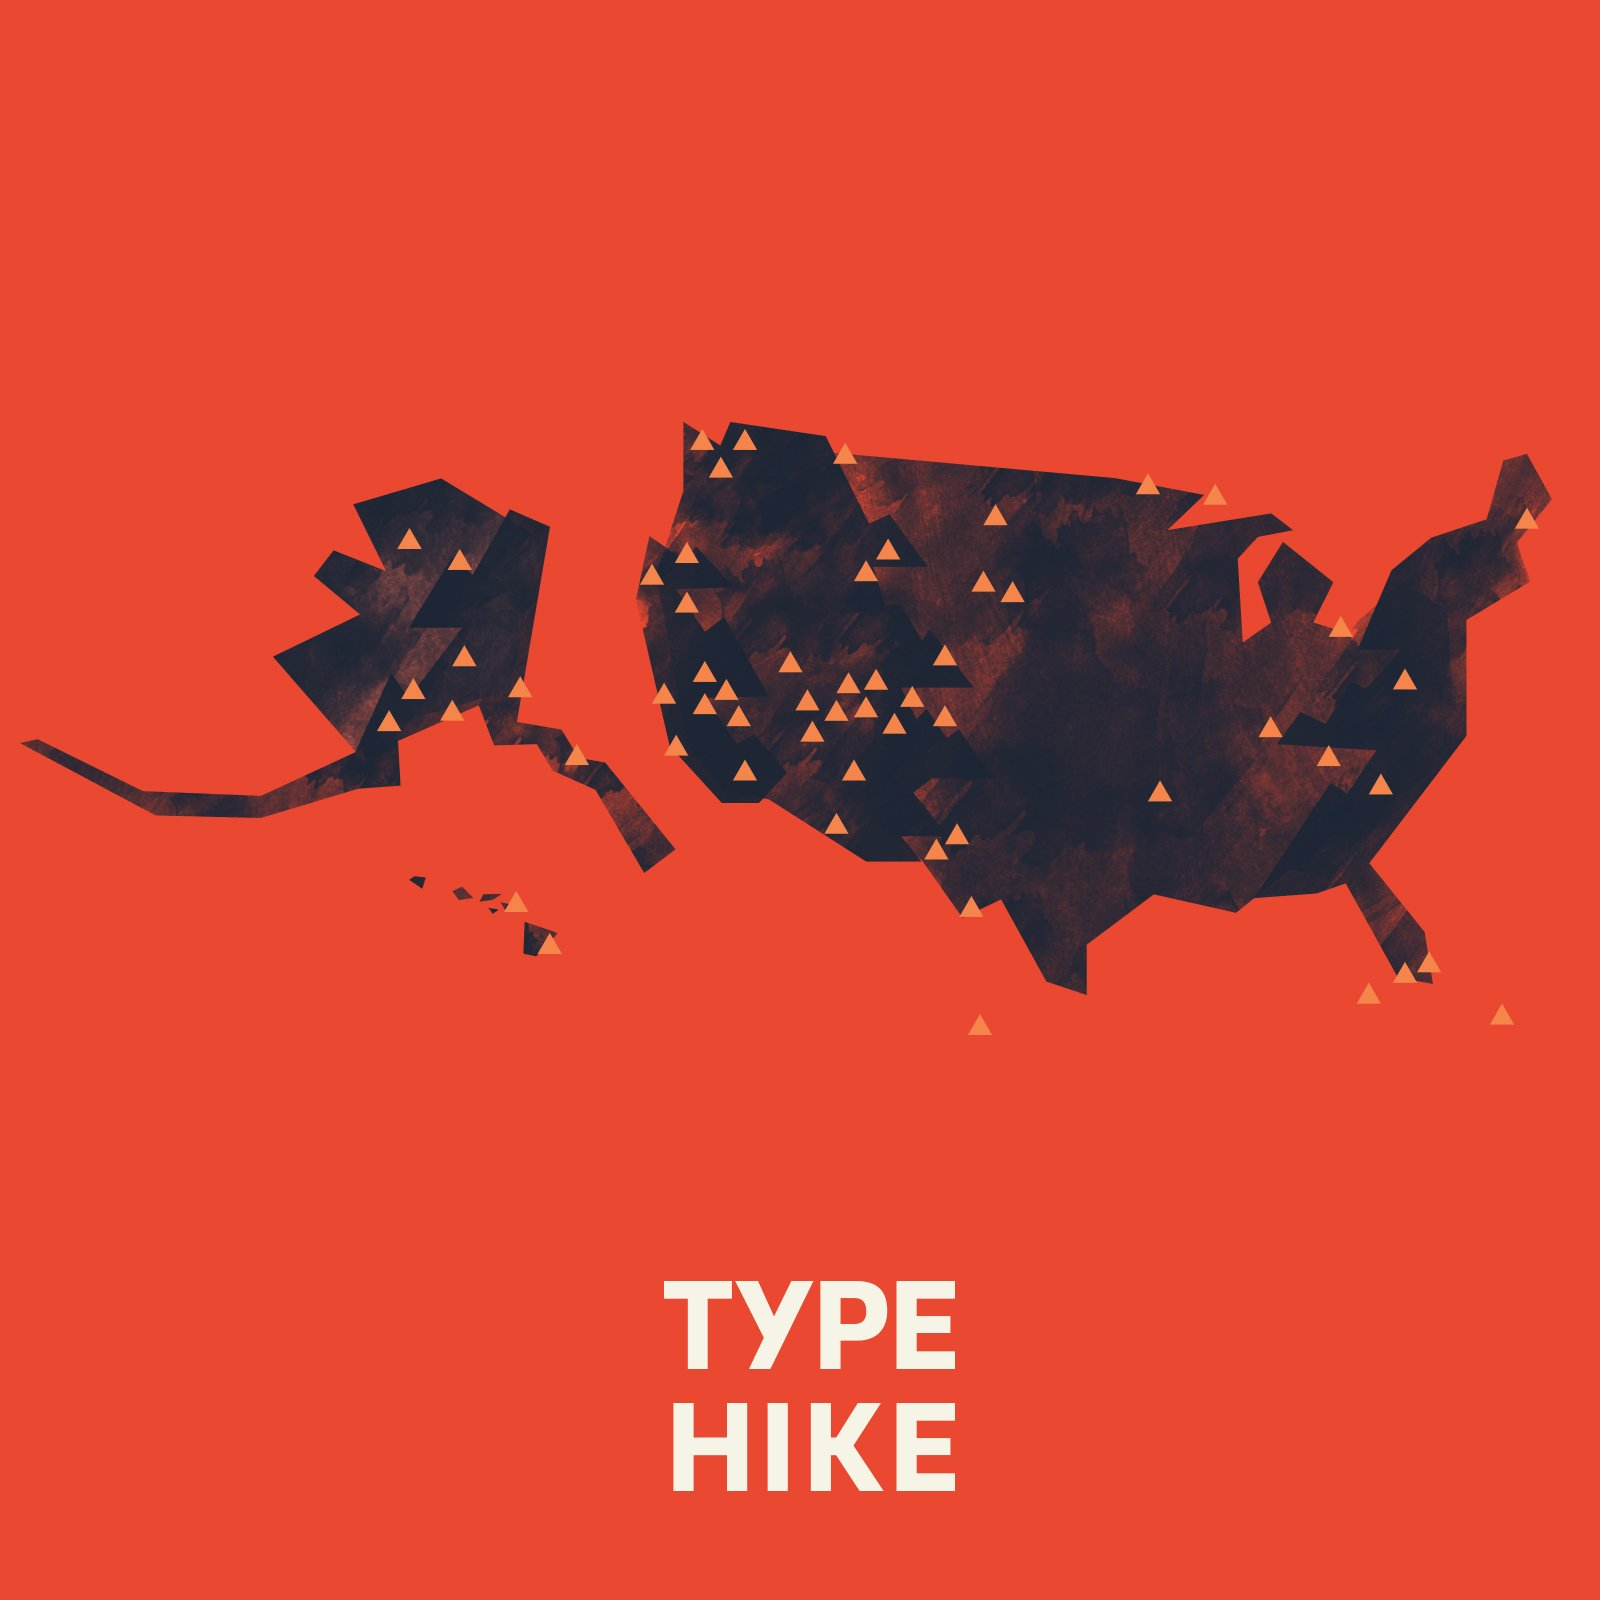 "To celebrate the centennial of the U.S. National Park Service, designers James Louis Walker and David Ryejol created the project Type Hike, in which they partnered with 59 designers, letterers, type designers, and studios to each create a custom typography-based graphic for one of the nation's parks. They were given some basic guidelines such as color, size, and a request to focus on the park name itself. Most of the type is hand-drawn by the designers.  ""When we conceived the project we were looking for an outlet to use design as a positive response to the negative, divisive mood swing our country is currently experiencing,"" Ryejol and Walker said in a statement. ""We have always strongly believed that as designers we are obligated to use our talents to make the word a more beautiful place, and celebrating our National Parks presented the perfect opportunity to do so. Looking forward with optimism to another great century for the park system is one of the main goals for the project.""  The designs will roll out at typehike.com as a series of print posters, shirts, and other apparel, with 100 percent of proceeds going directly to the National Park system."